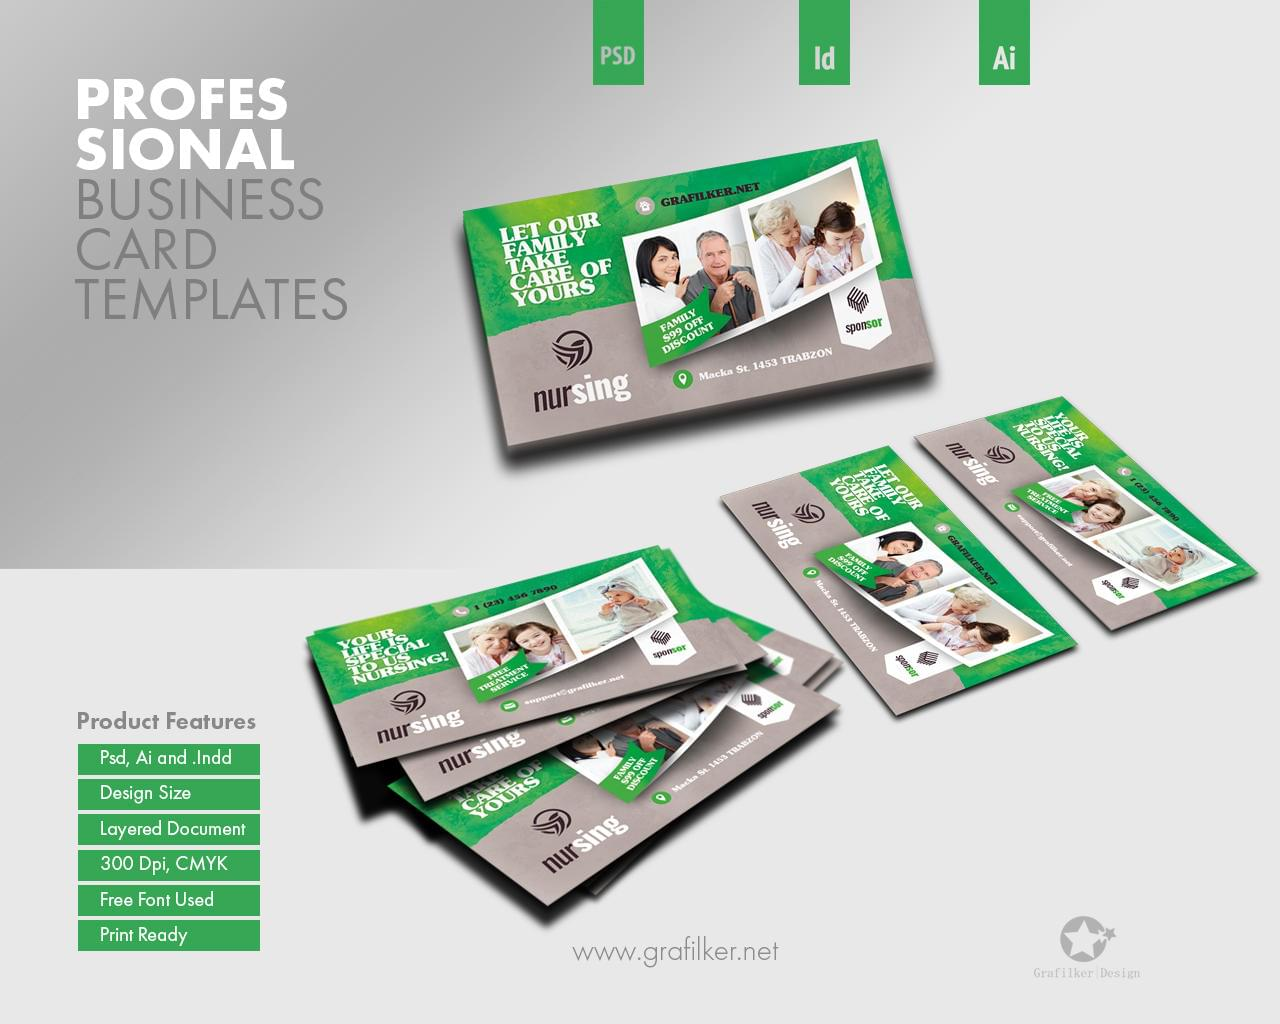 Professional business card templates by grafilker on envato studio professional business card templates flashek Choice Image